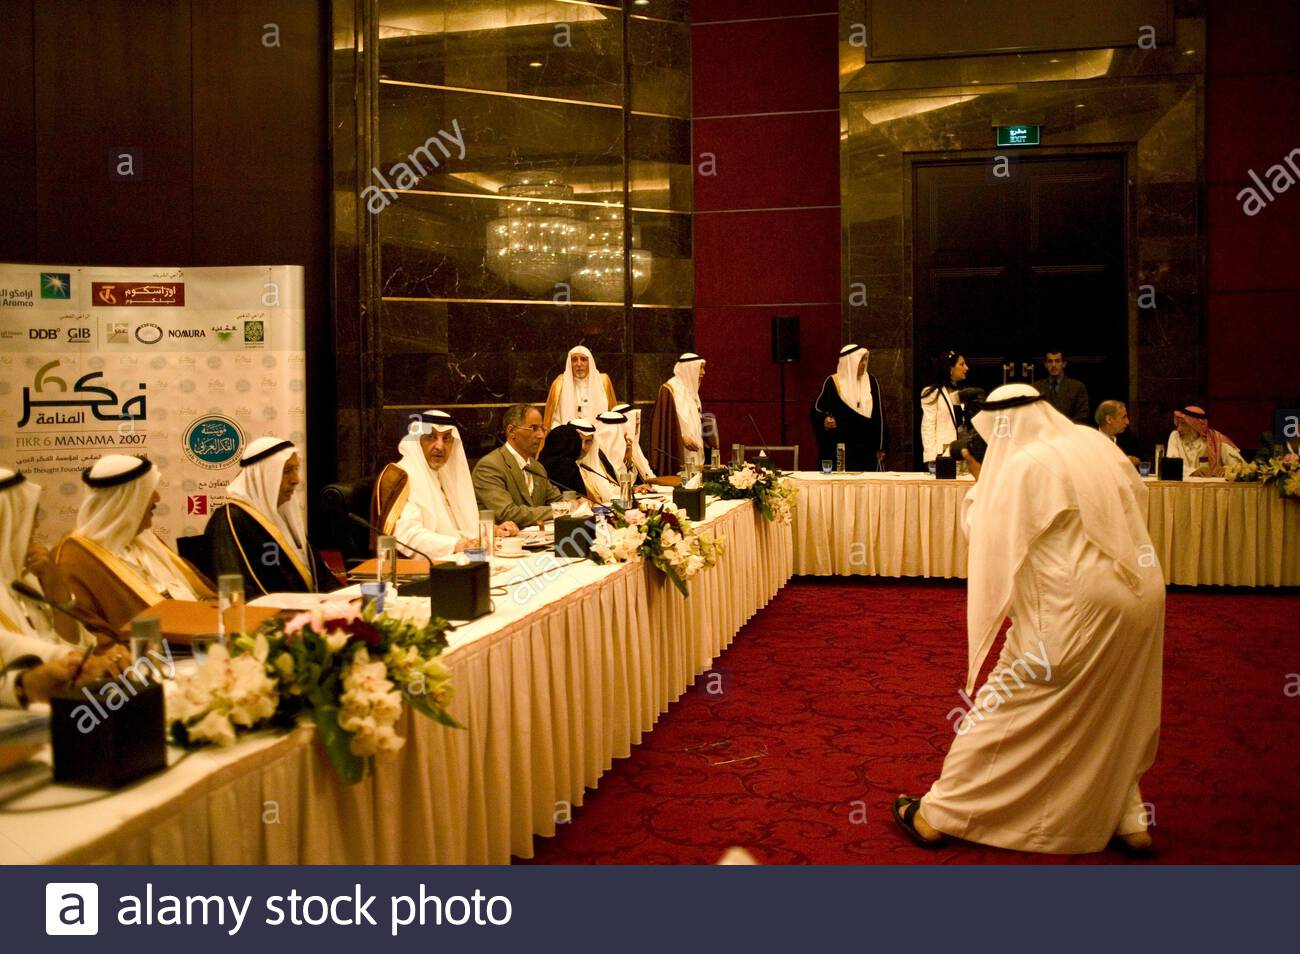 Officials and Delegates at the FIKR conference 2007 in Manama, Bahrain. Stock Photo